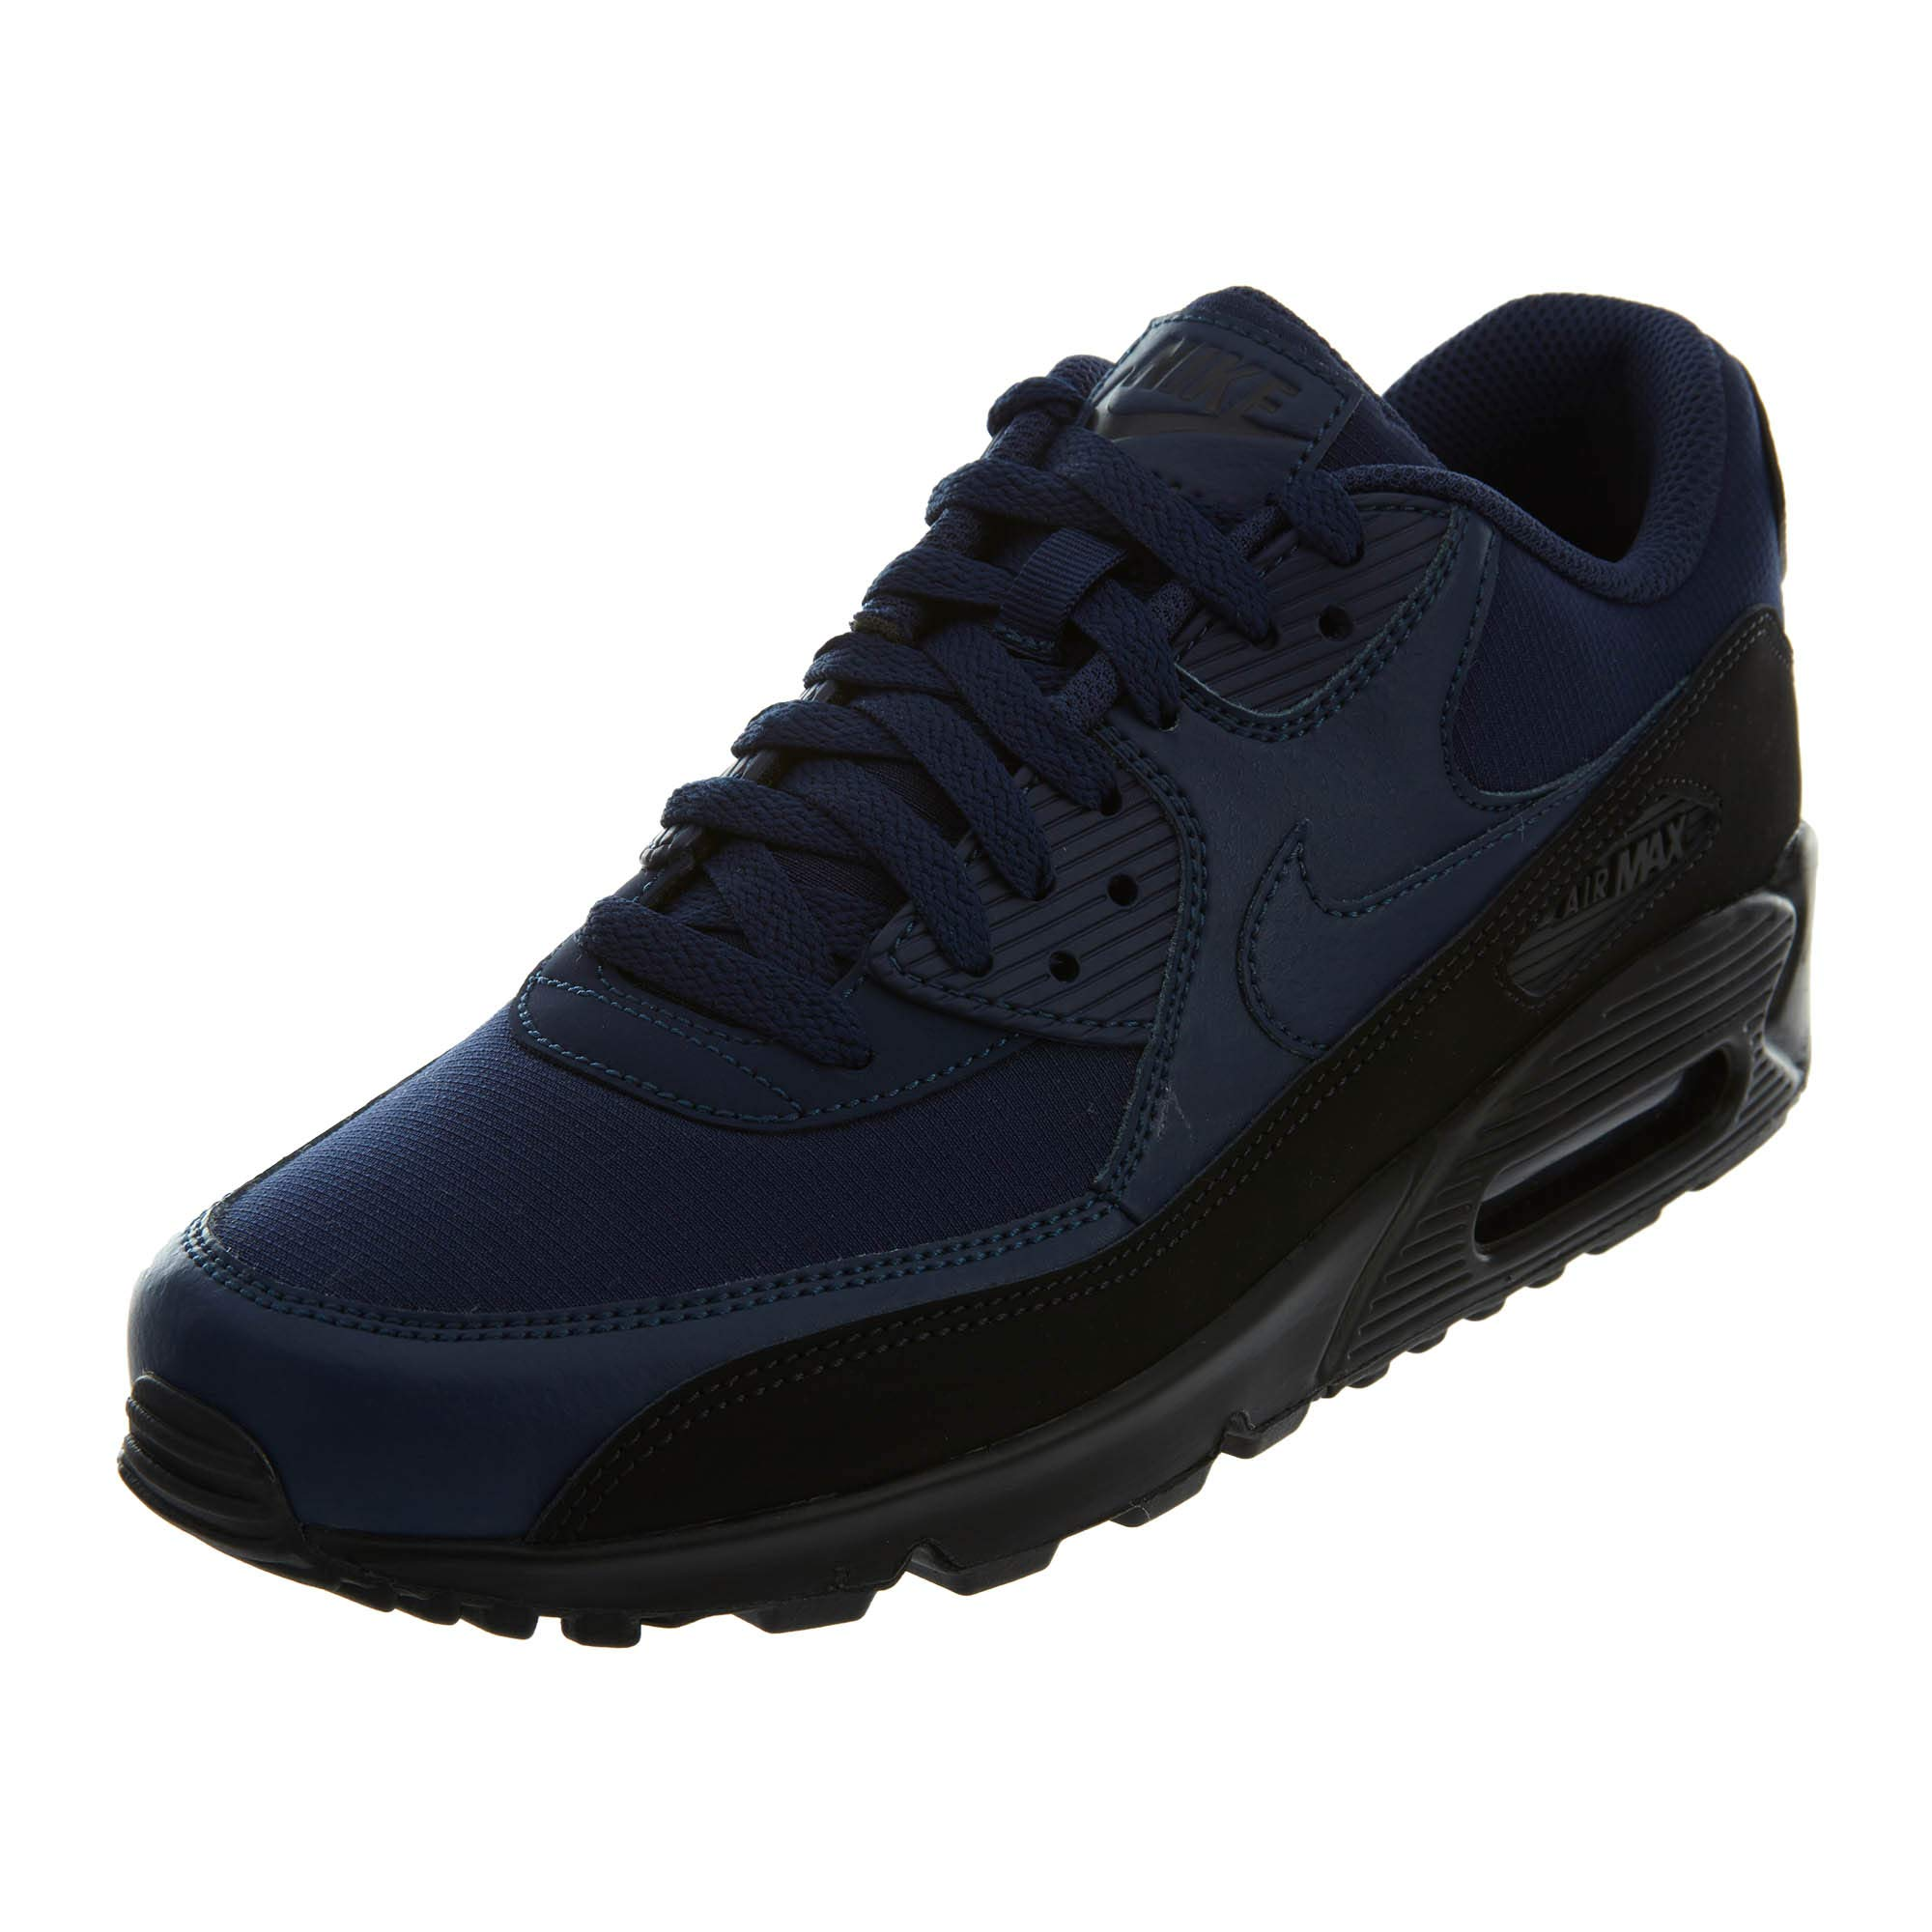 8f1d244929 Galleon - Nike Mens Air Max 90 Essential Running Shoes Black/Midnight Navy  AJ1285-007 Size 12